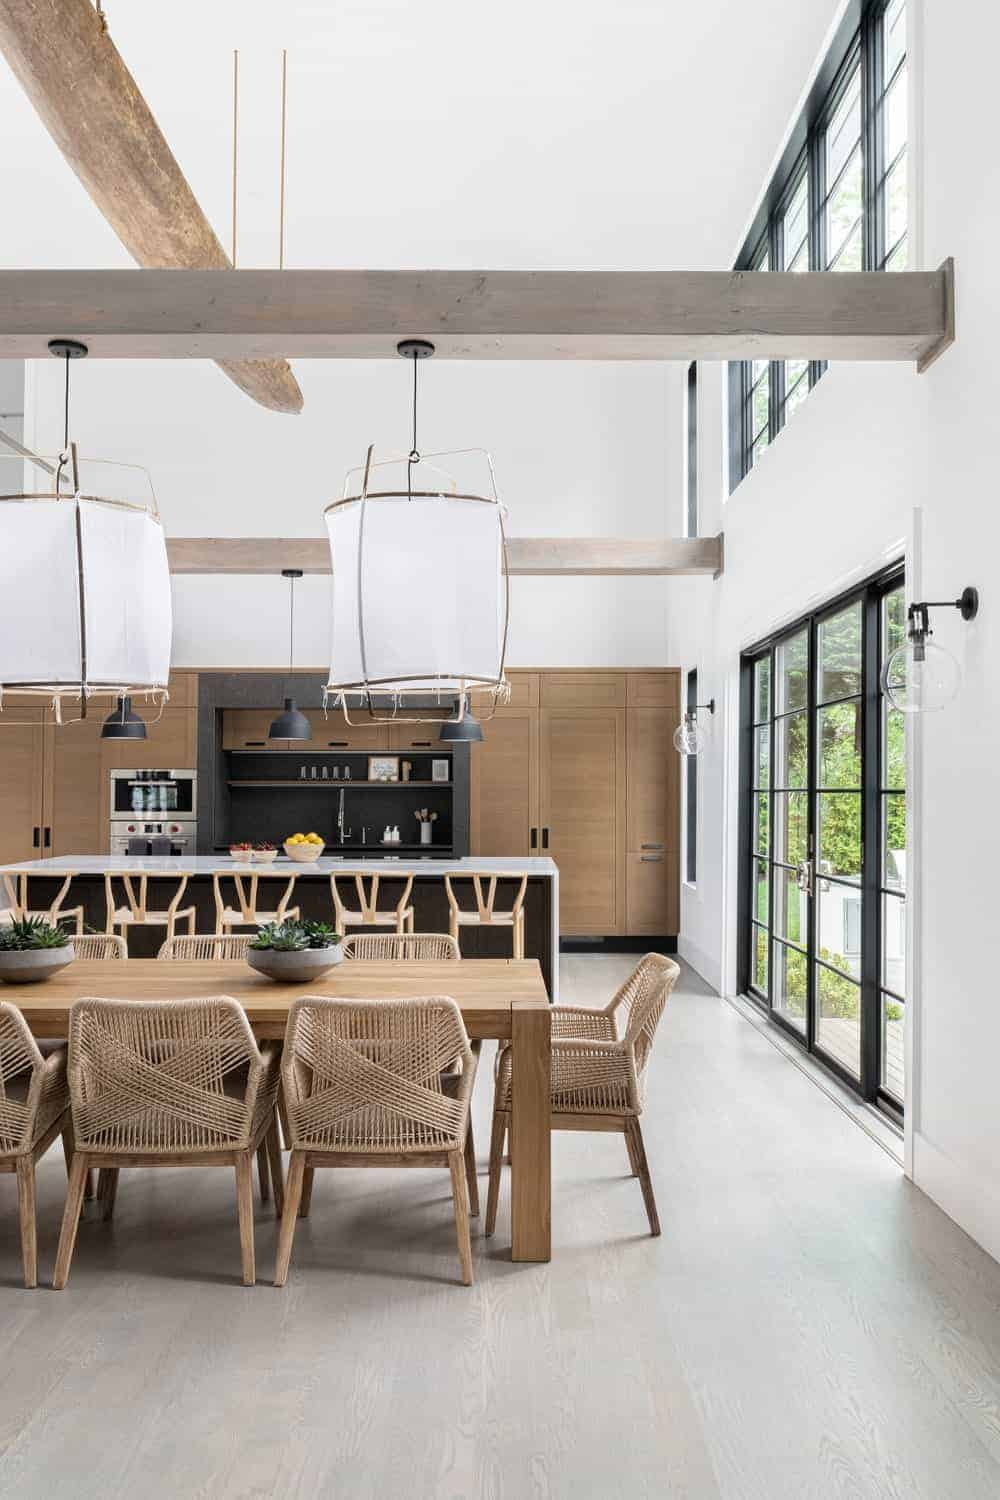 The dining room is surrounded by the white walls and white tall ceiling. The area features a wooden rectangular dining table set.